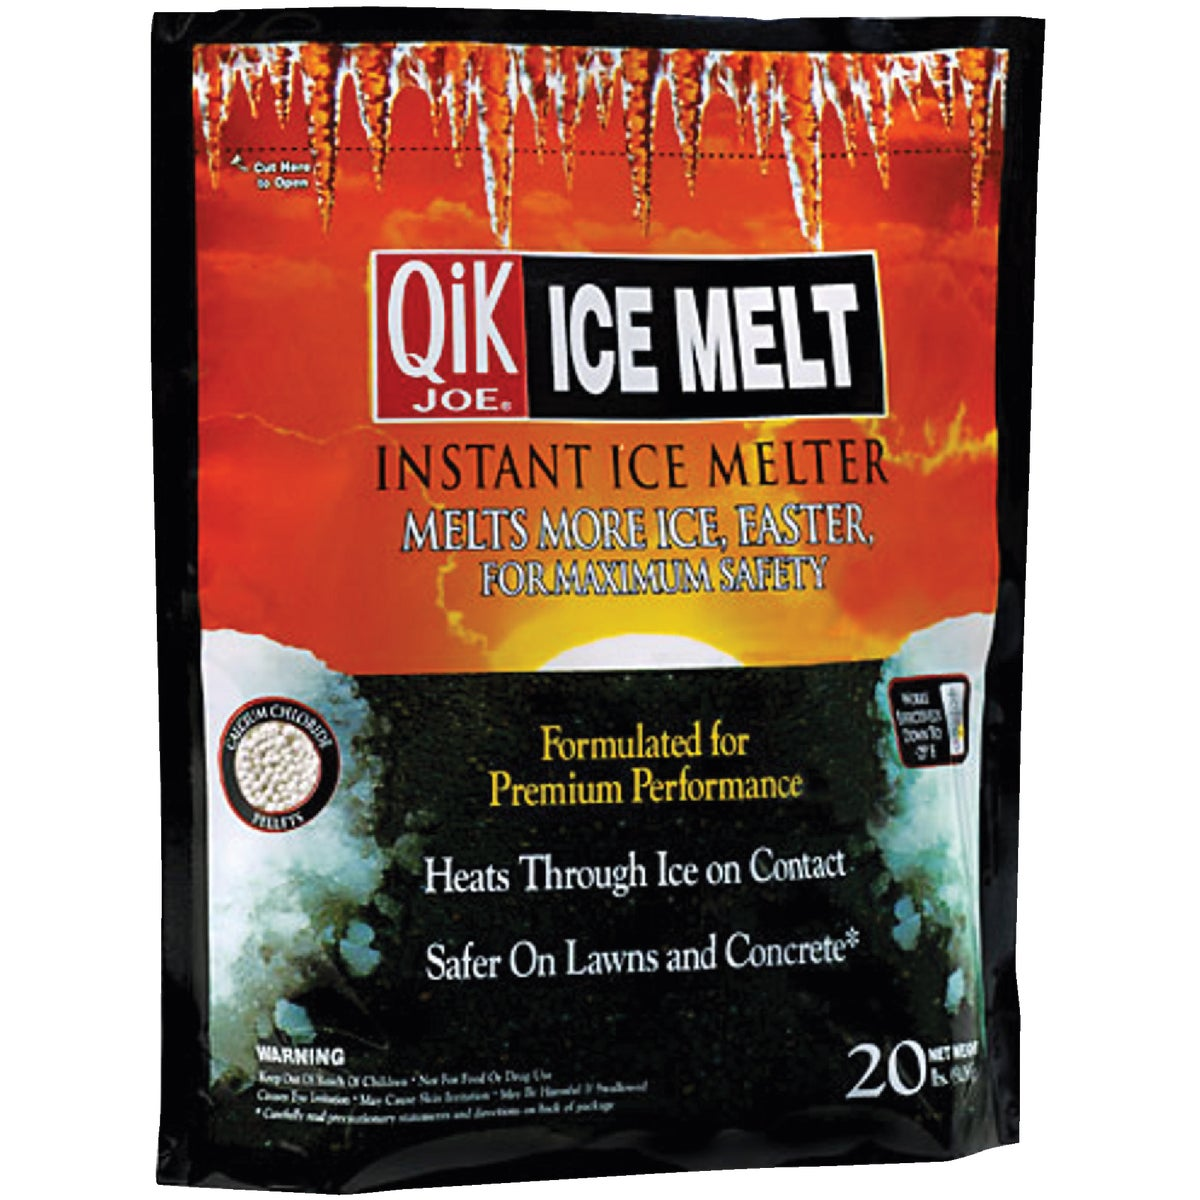 20# QIK JOE ICE MELT - 30020 by MILAZZO INDUSTRIES